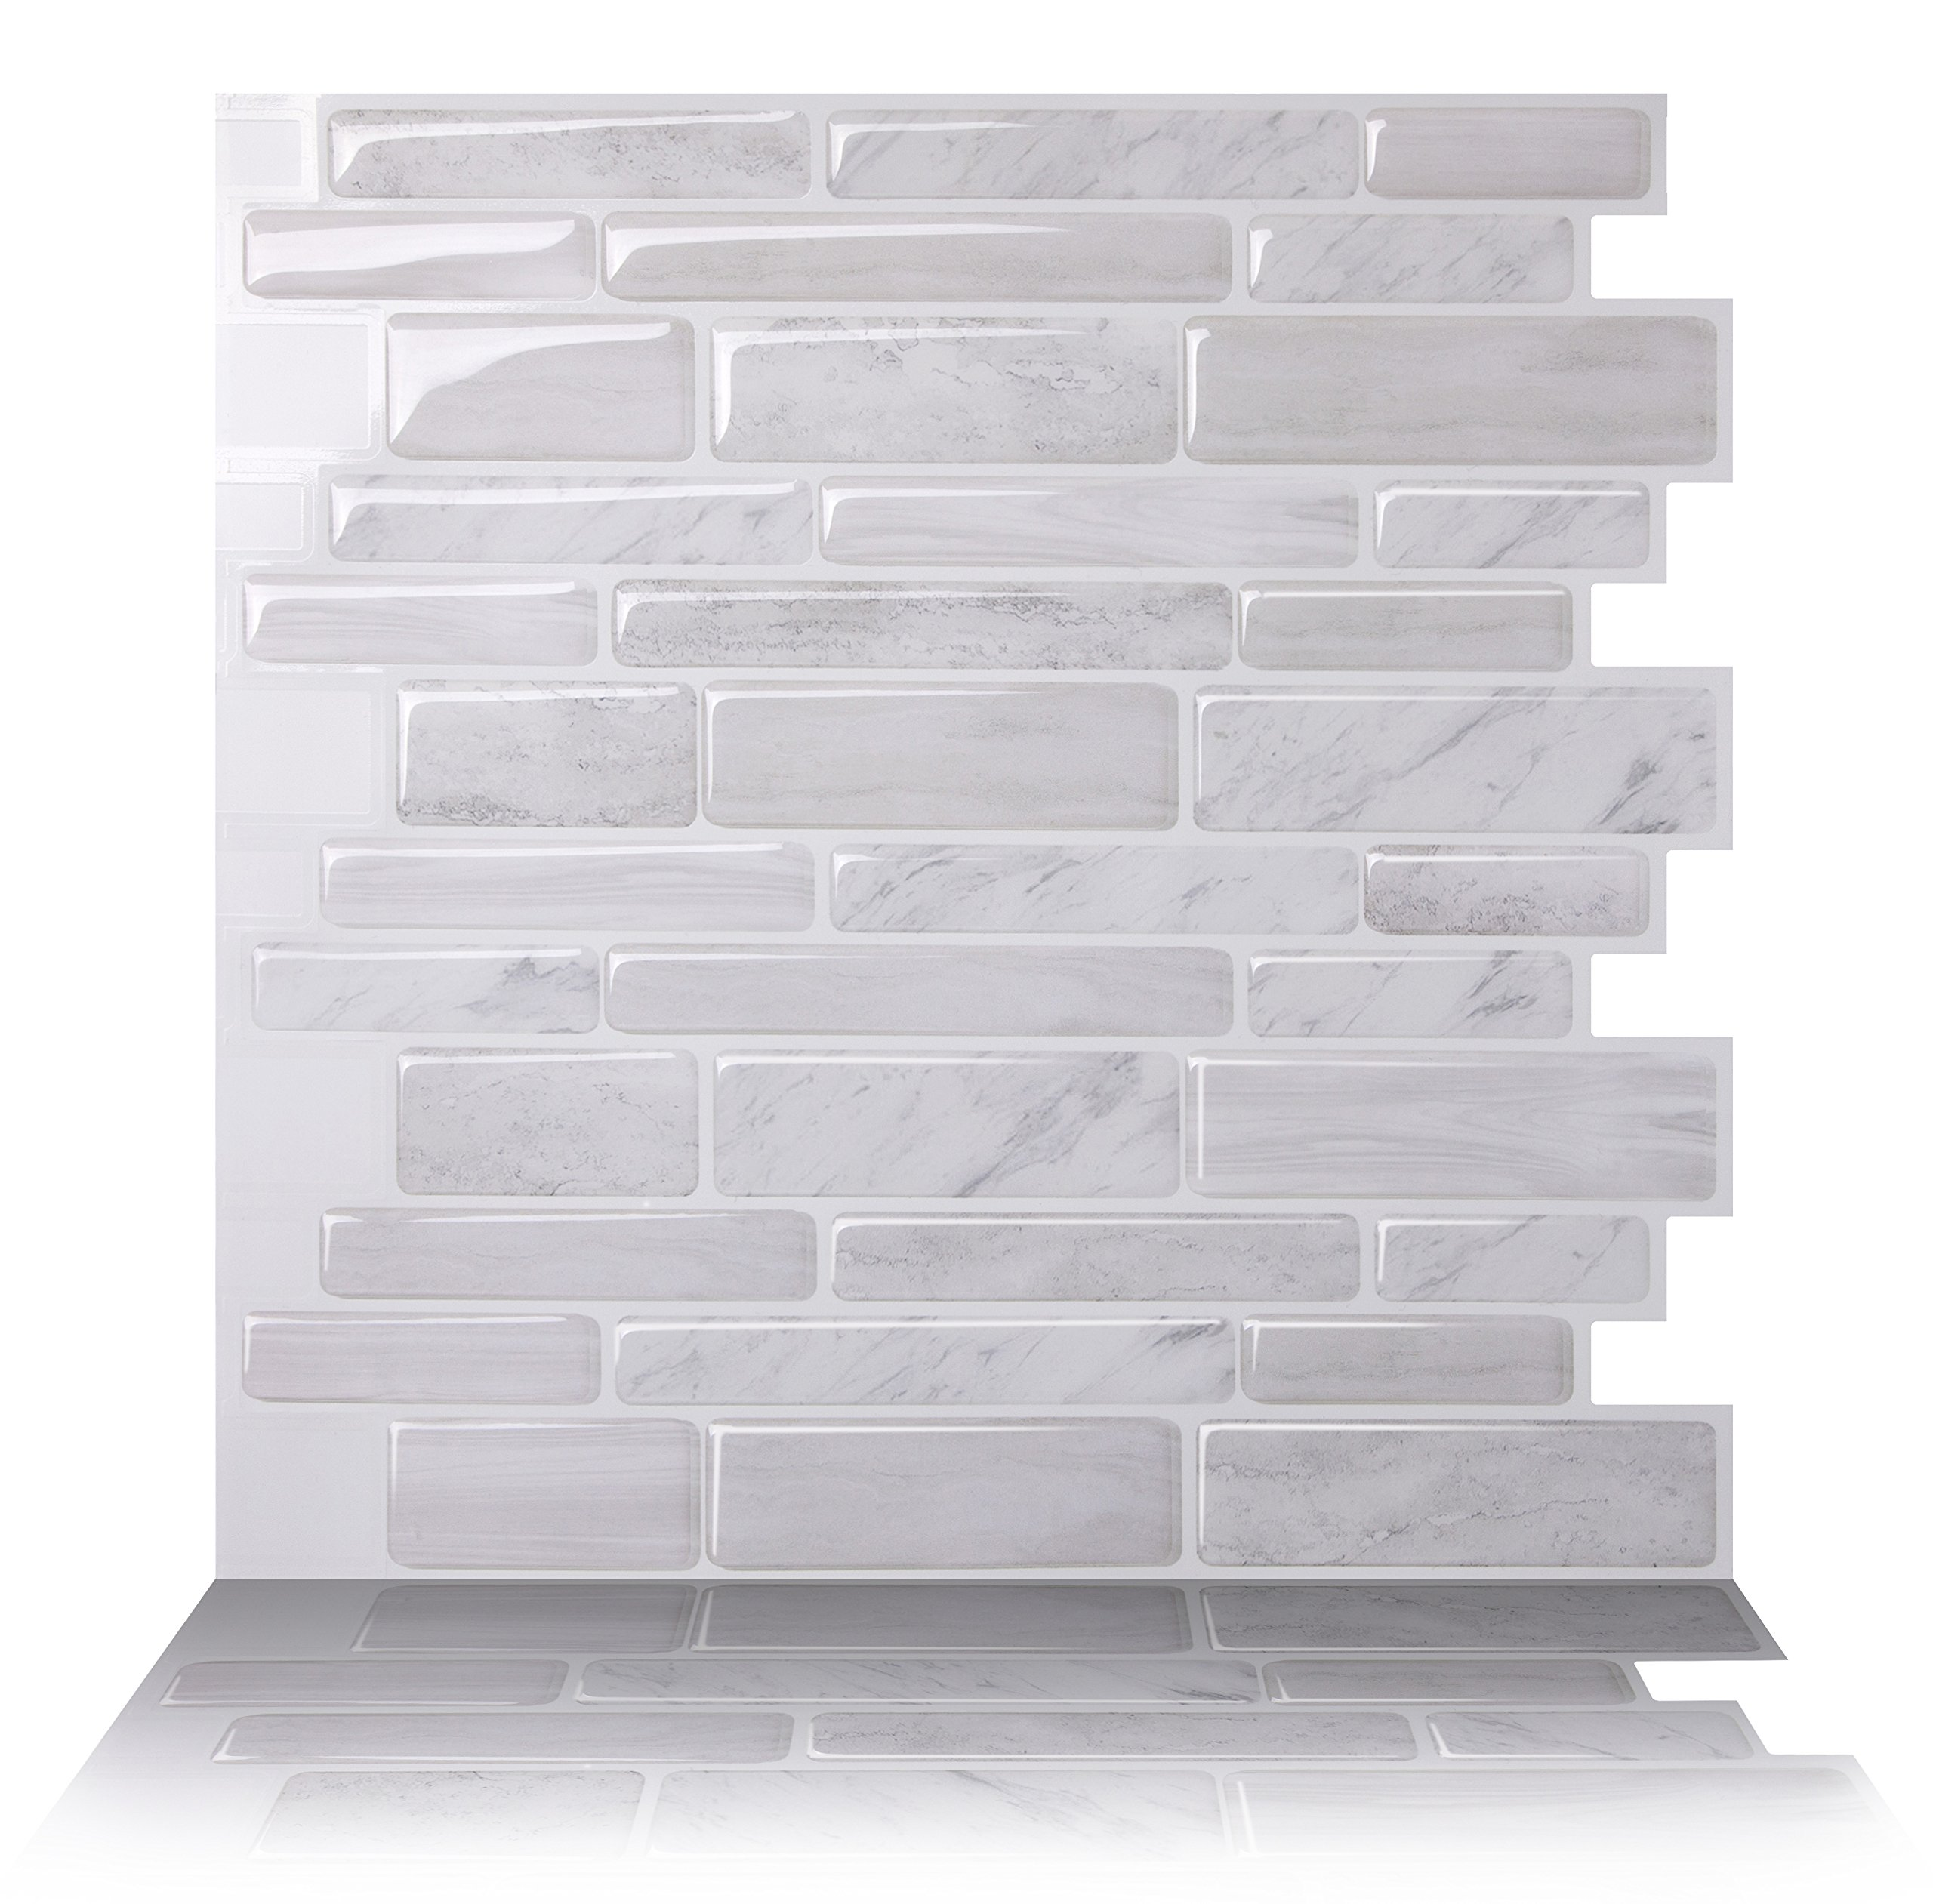 Tic Tac Tiles Anti-mold Peel and Stick Wall Tile in Polito White (10 Tiles)